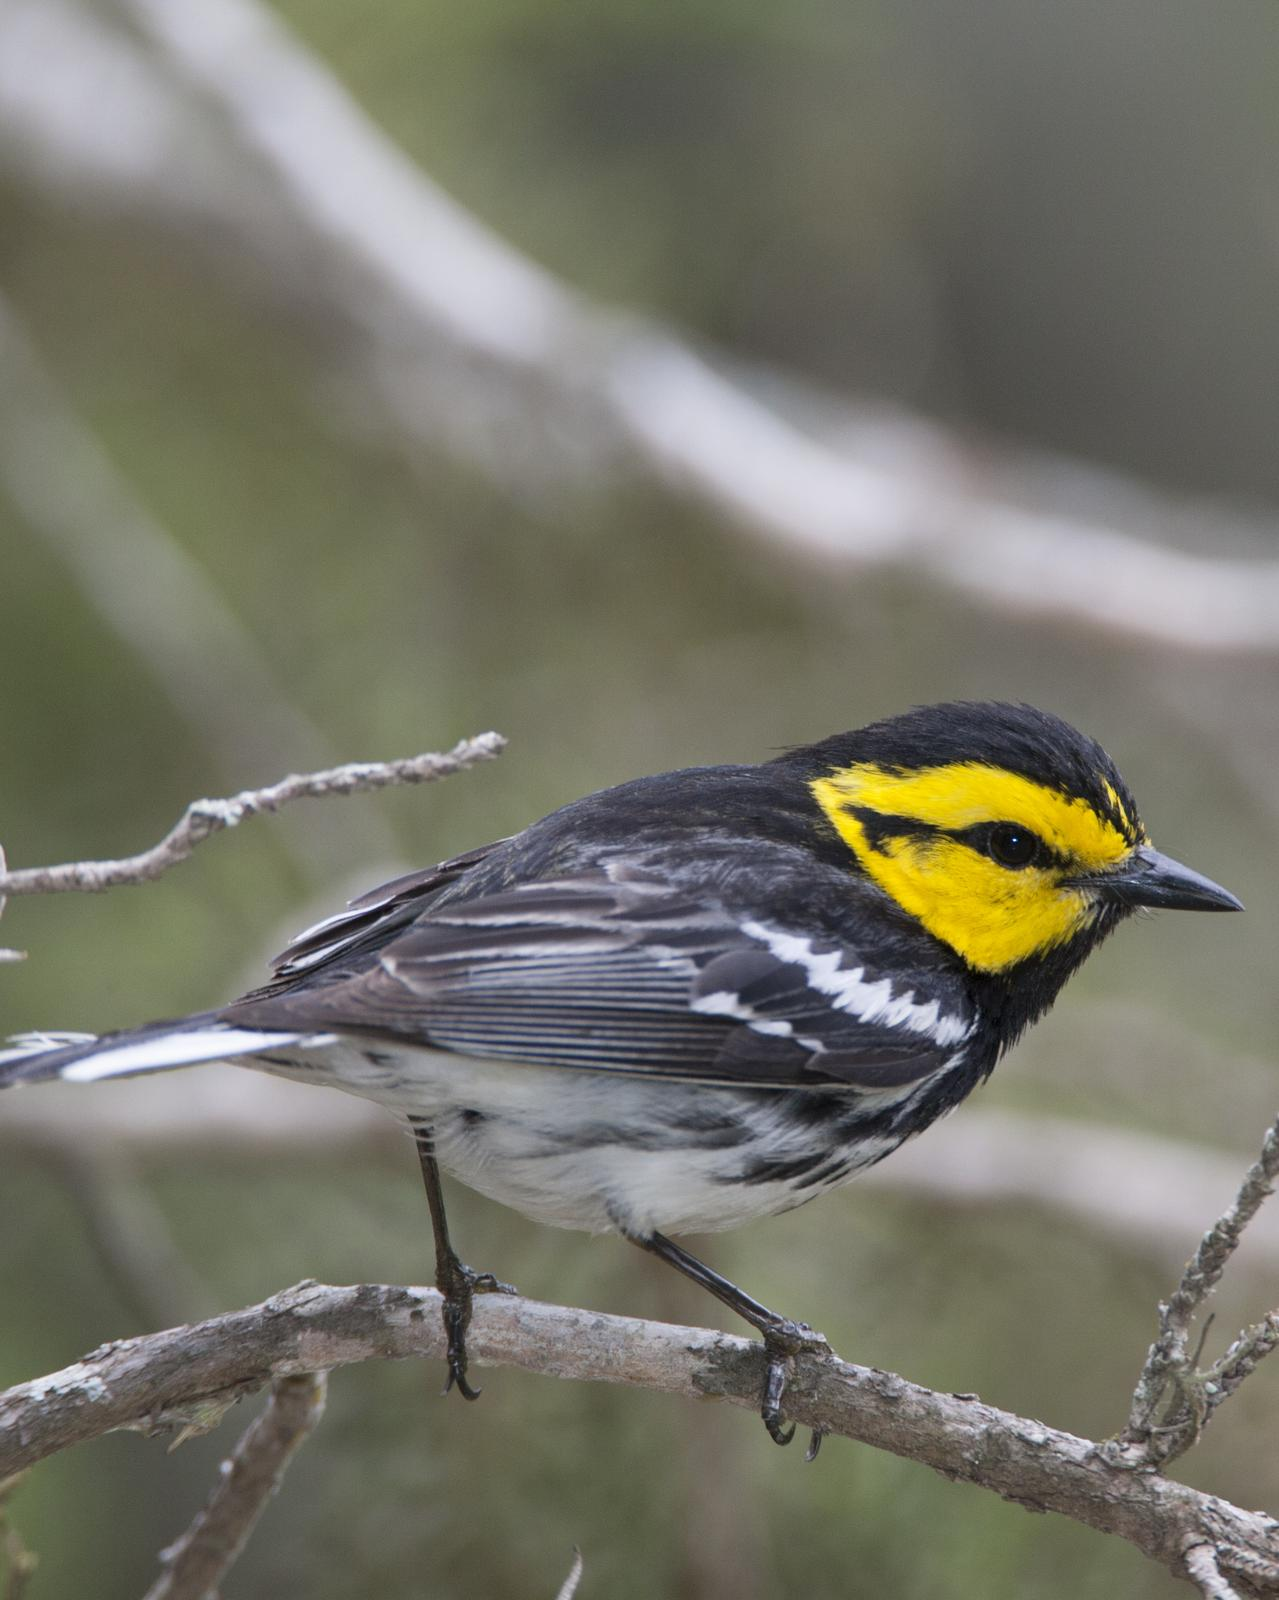 Golden-cheeked Warbler Photo by Jeff Moore